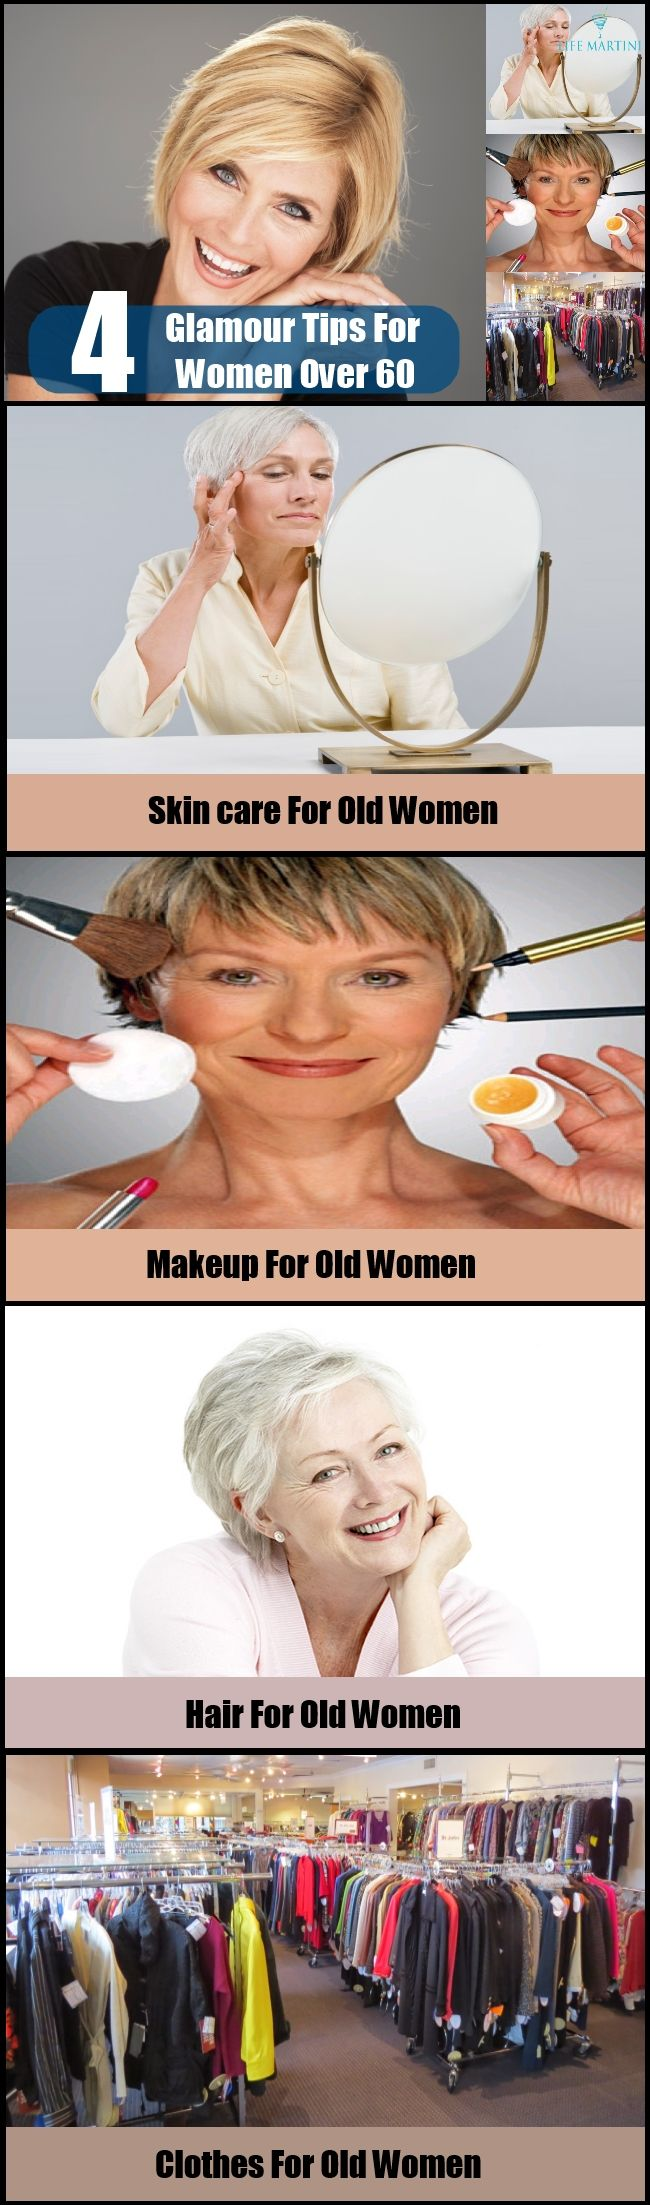 4 Best Glamour Tips For Women Over 60